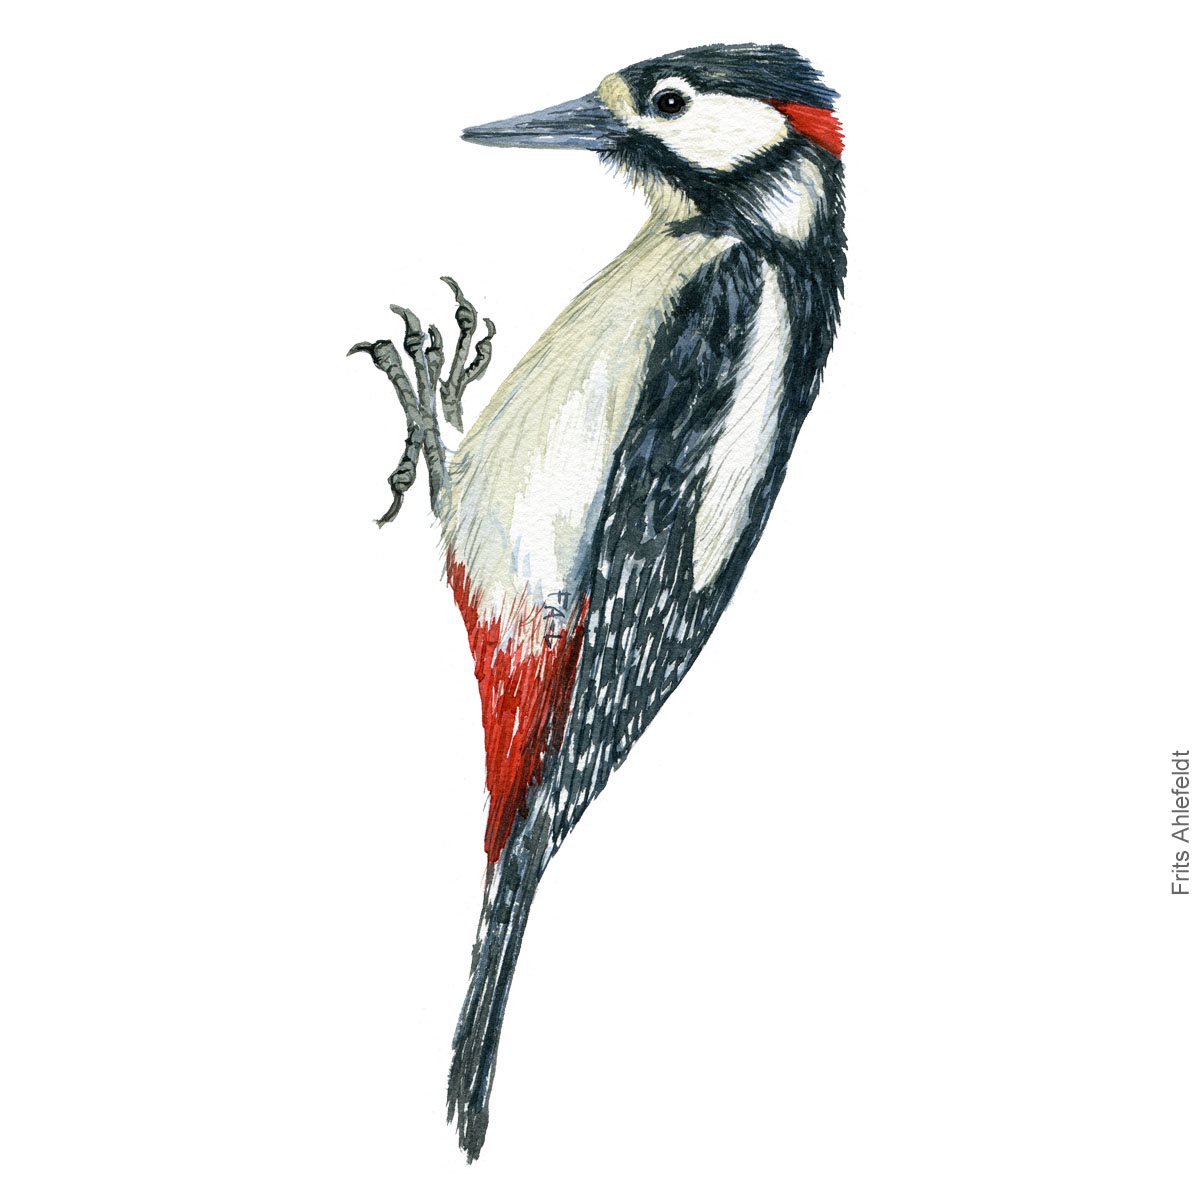 Stor flagspaette - Great spotted woodpecker watercolor illustration. Painting by Frits Ahlefeldt - Fugle akvarel tegning